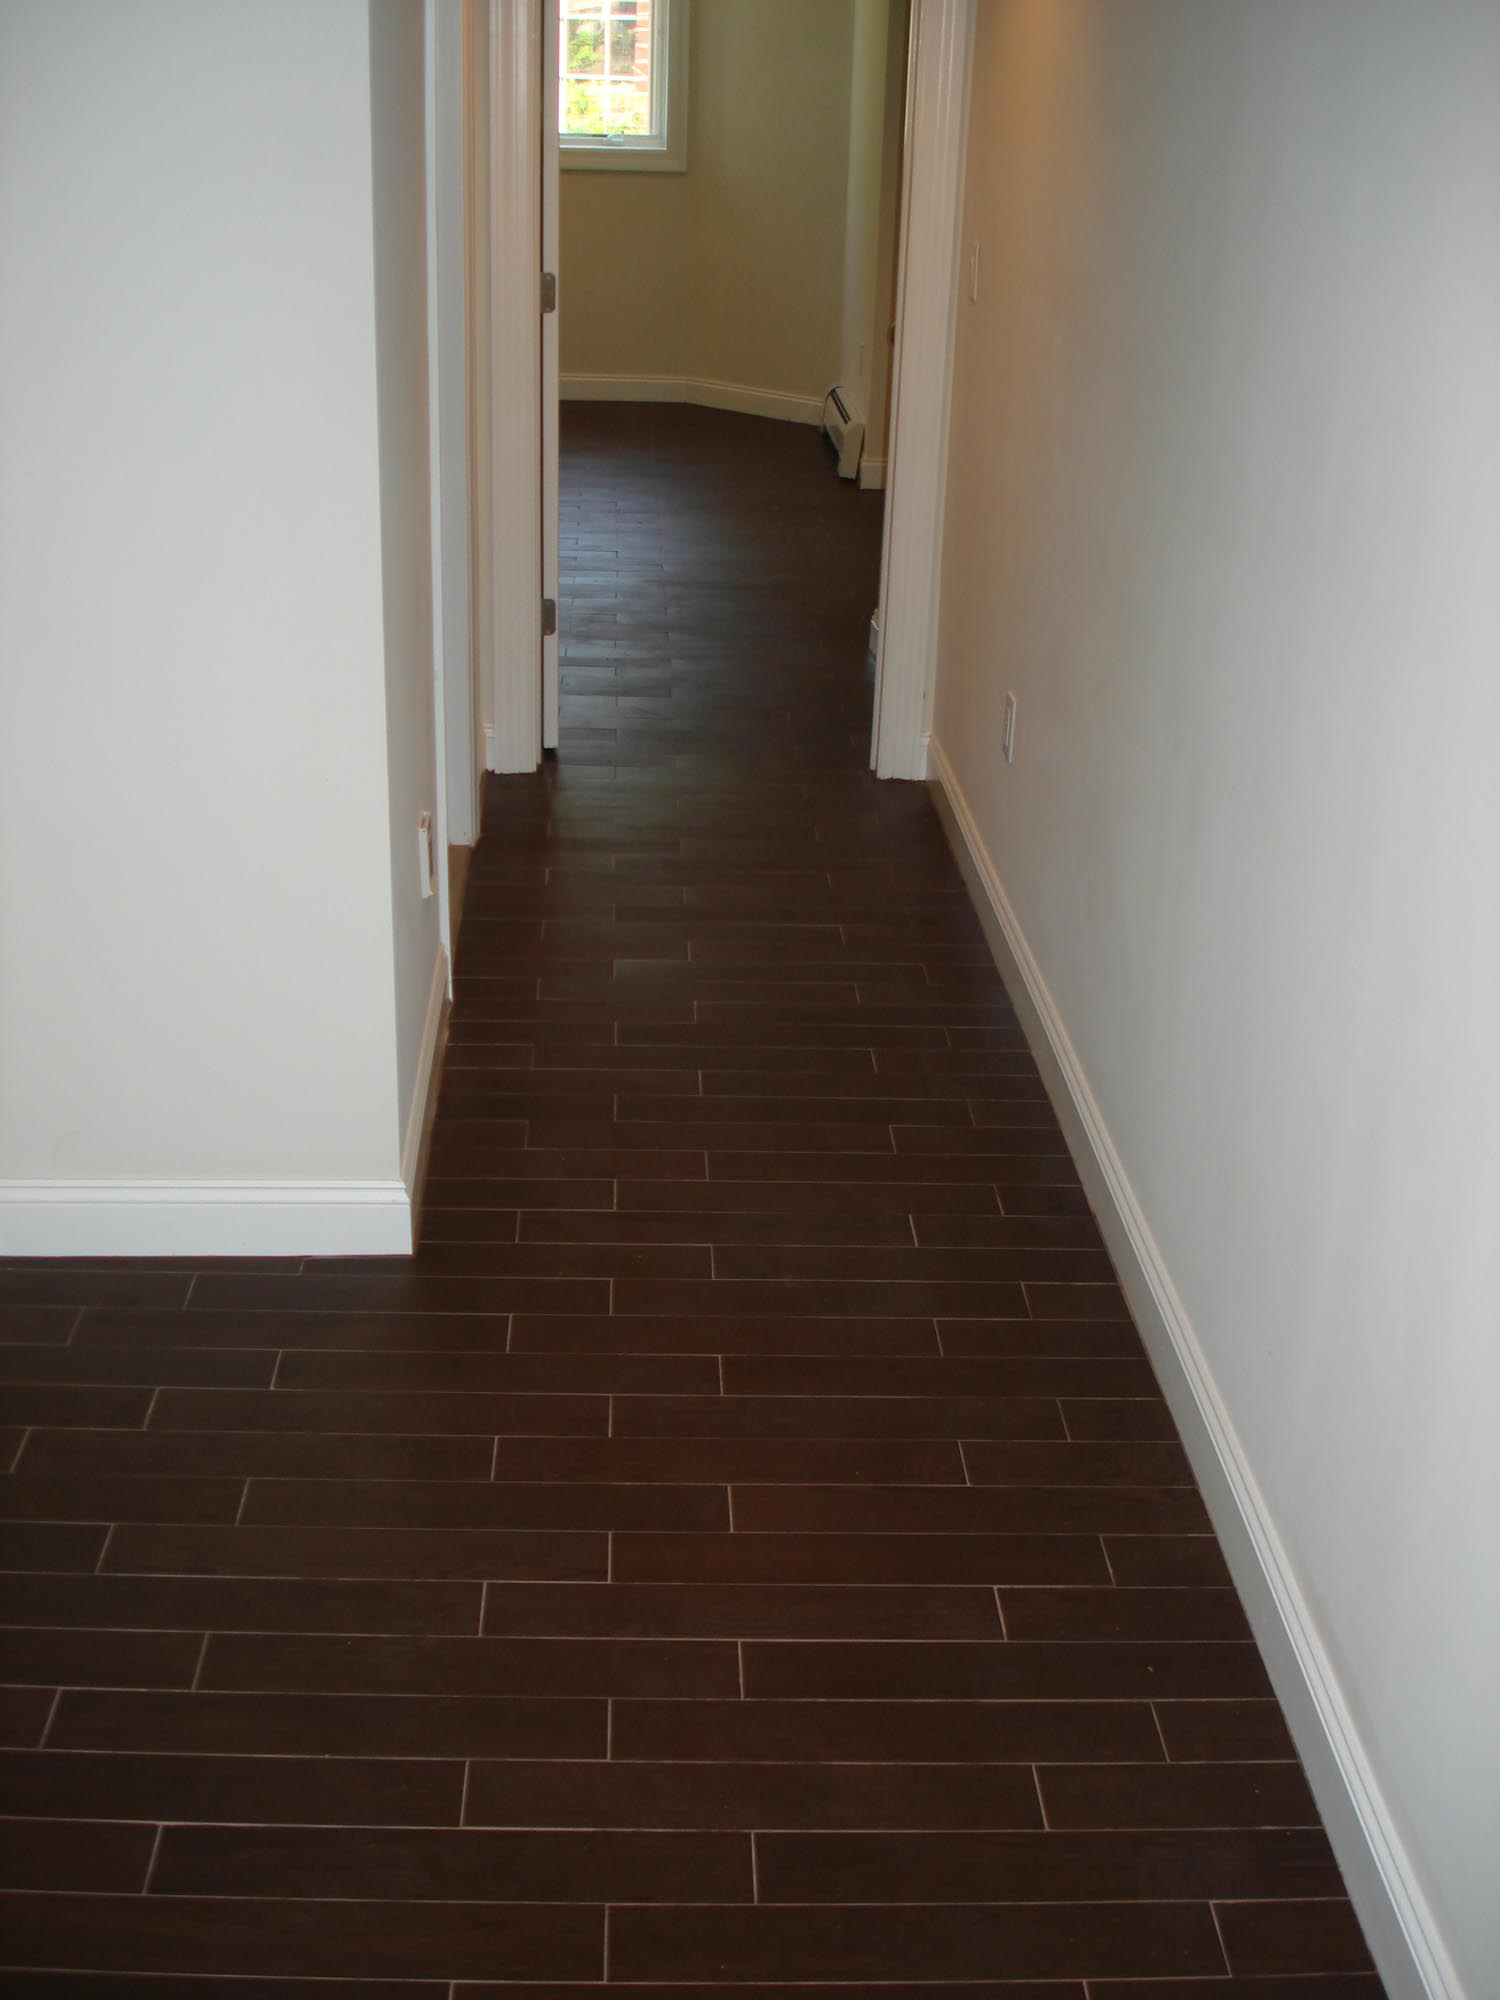 Wood Tile Floor Set On Thirds To Mimmic A Wood Floor